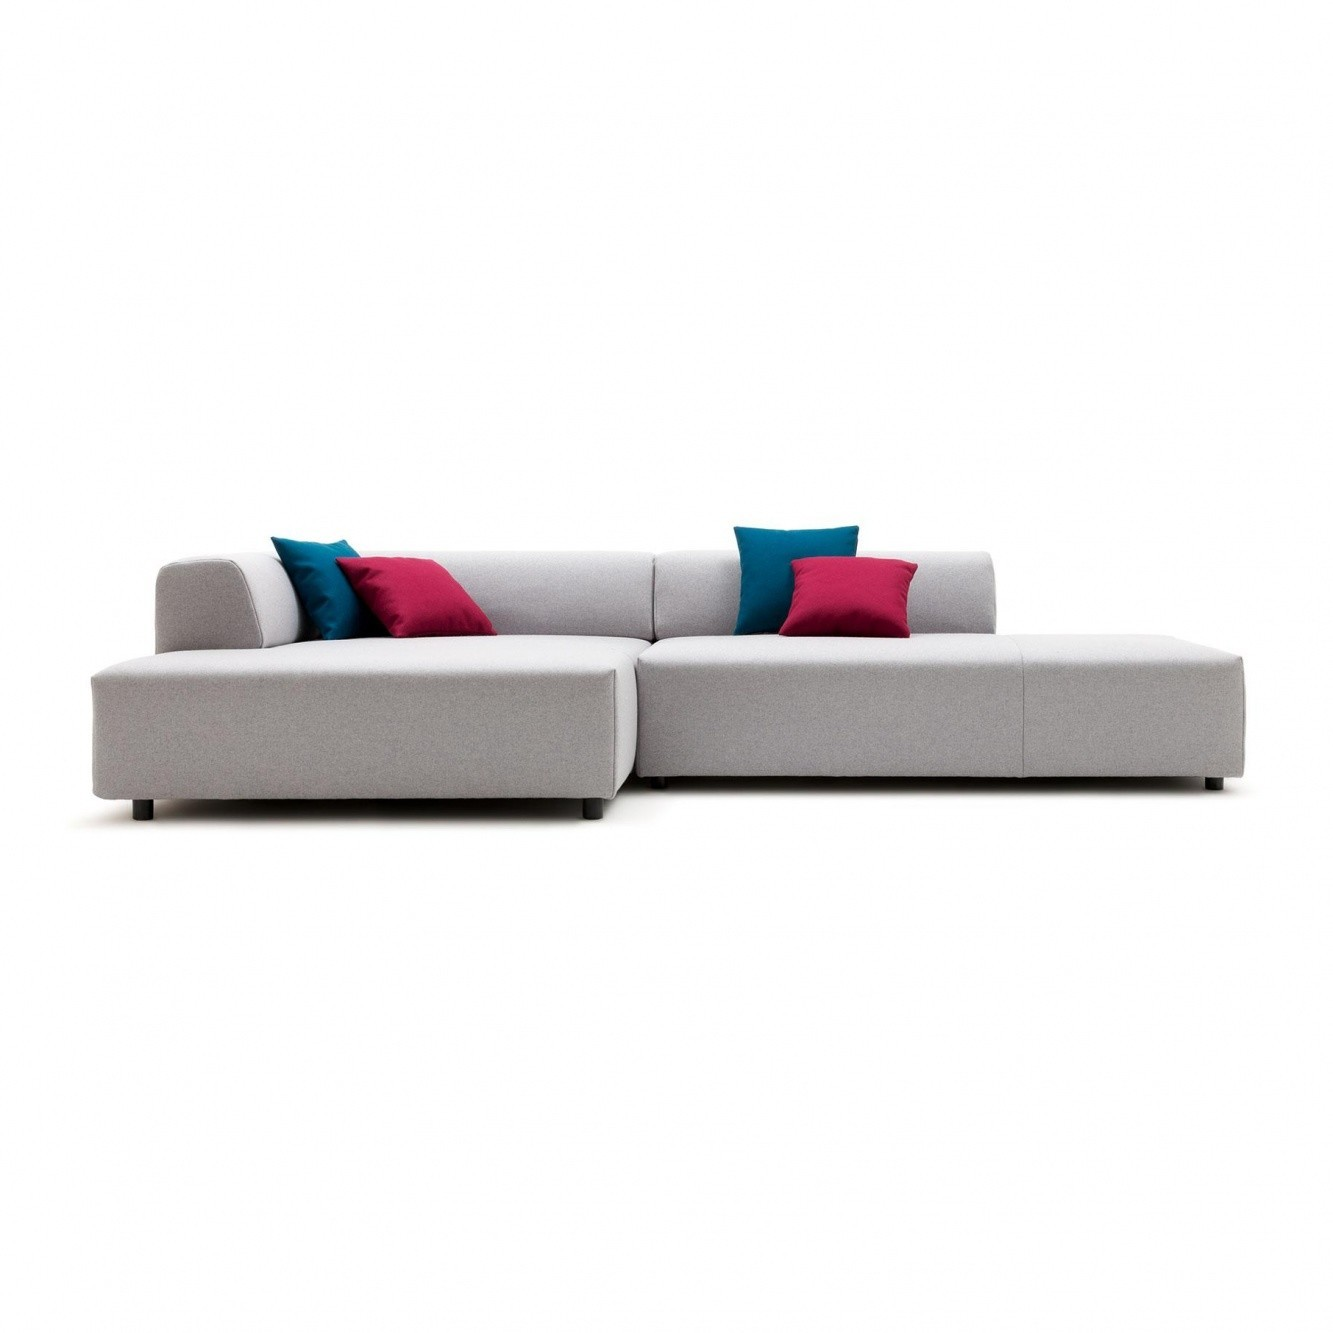 Freistil Ecksofa Freistil 184 Lounge Sofa